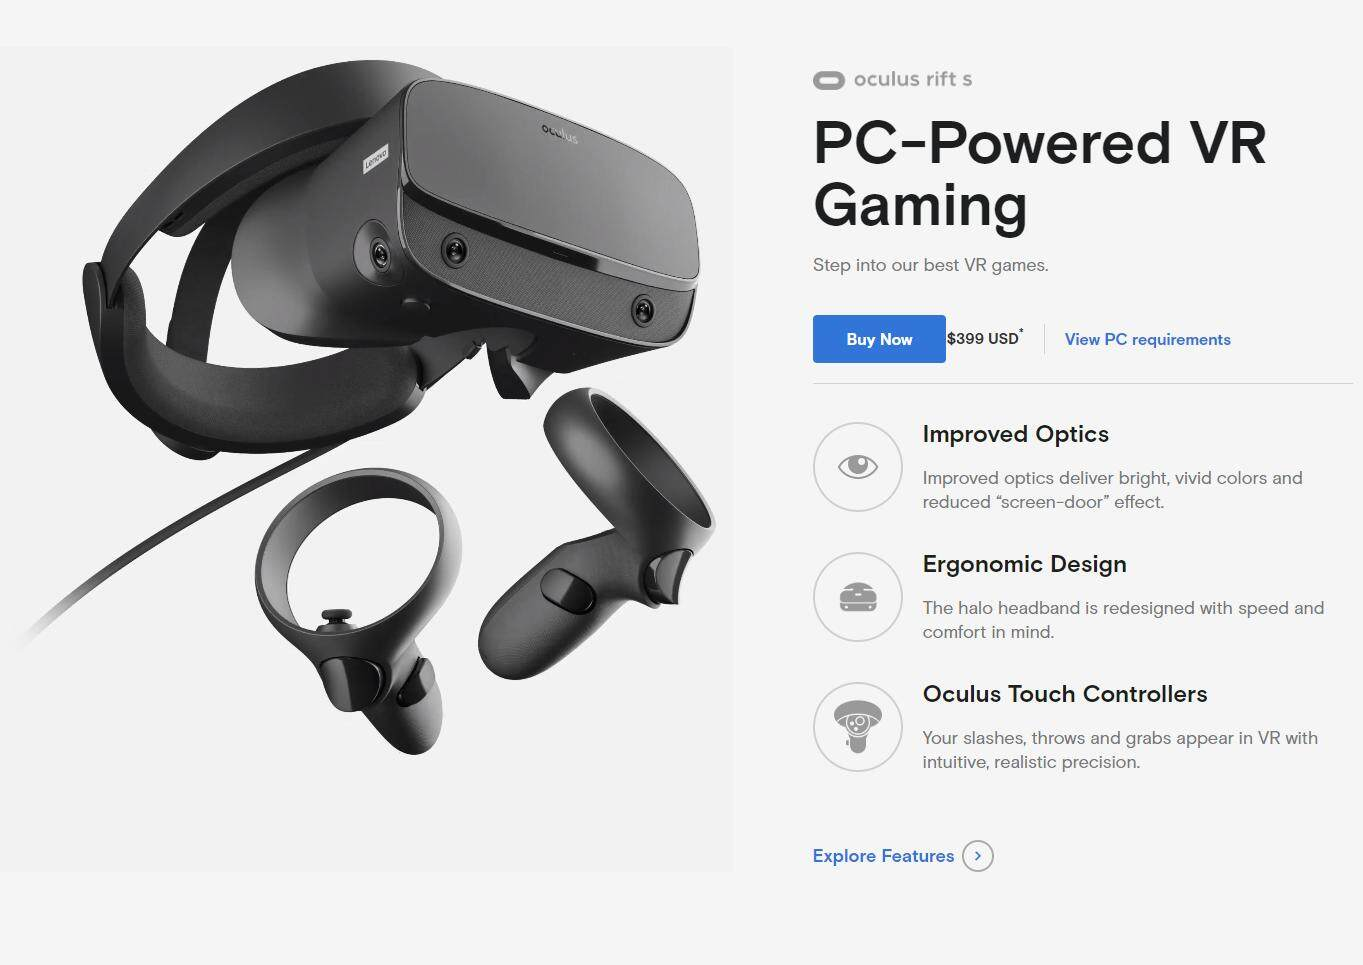 Oculus Rift S — PC-Powered VR